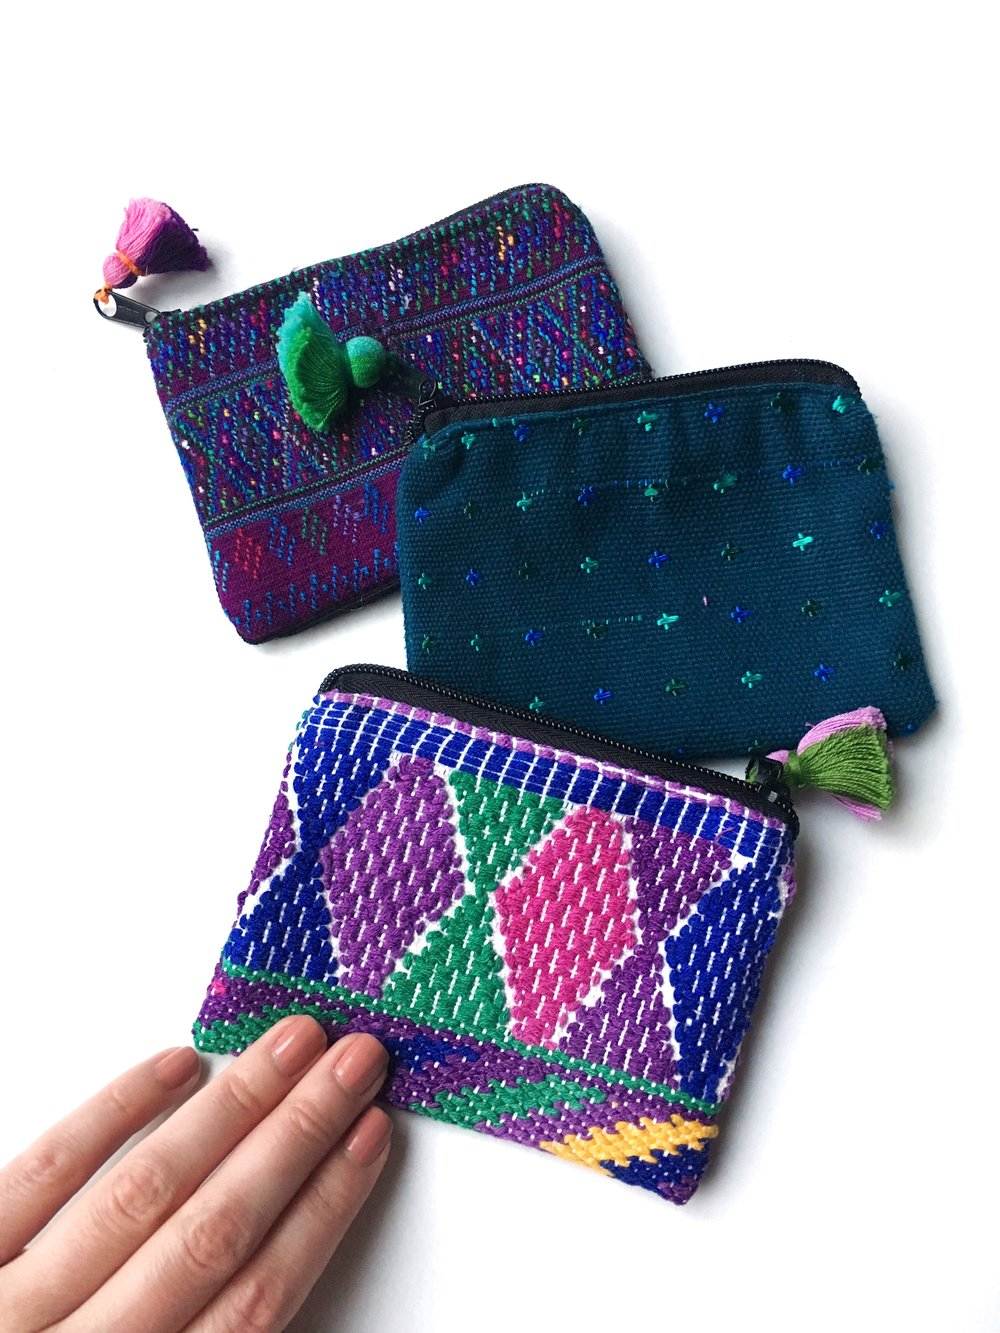 Nomad Travel Pouches